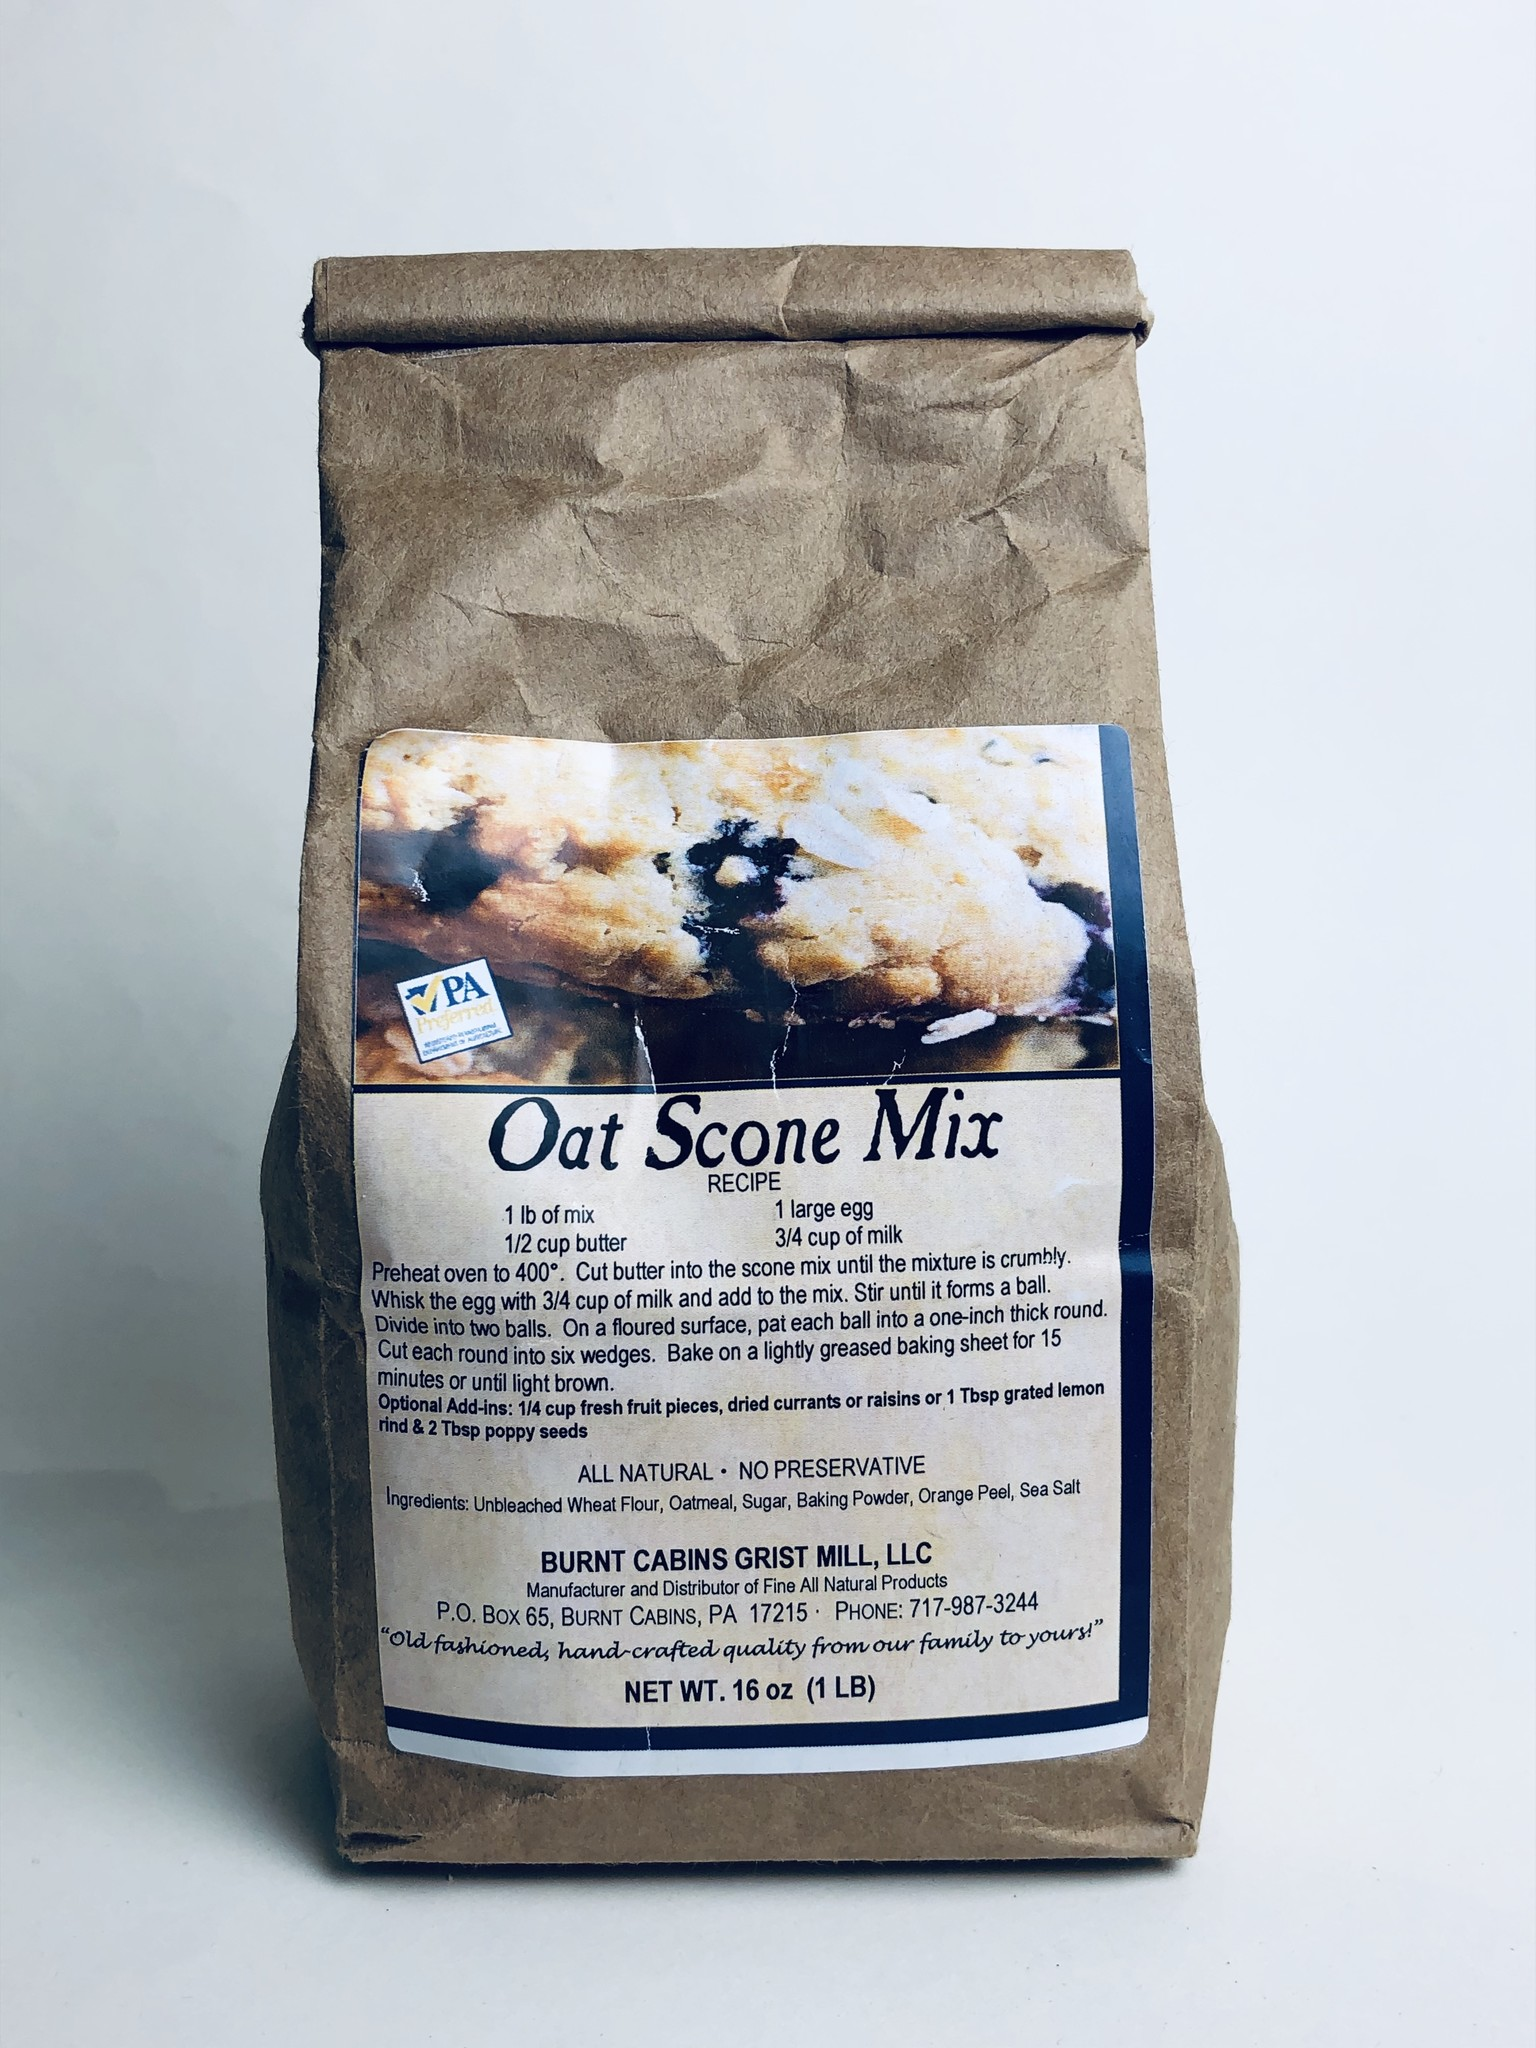 Burnt Cabins Grist Mill - Oat Scone Mix 1 lb.